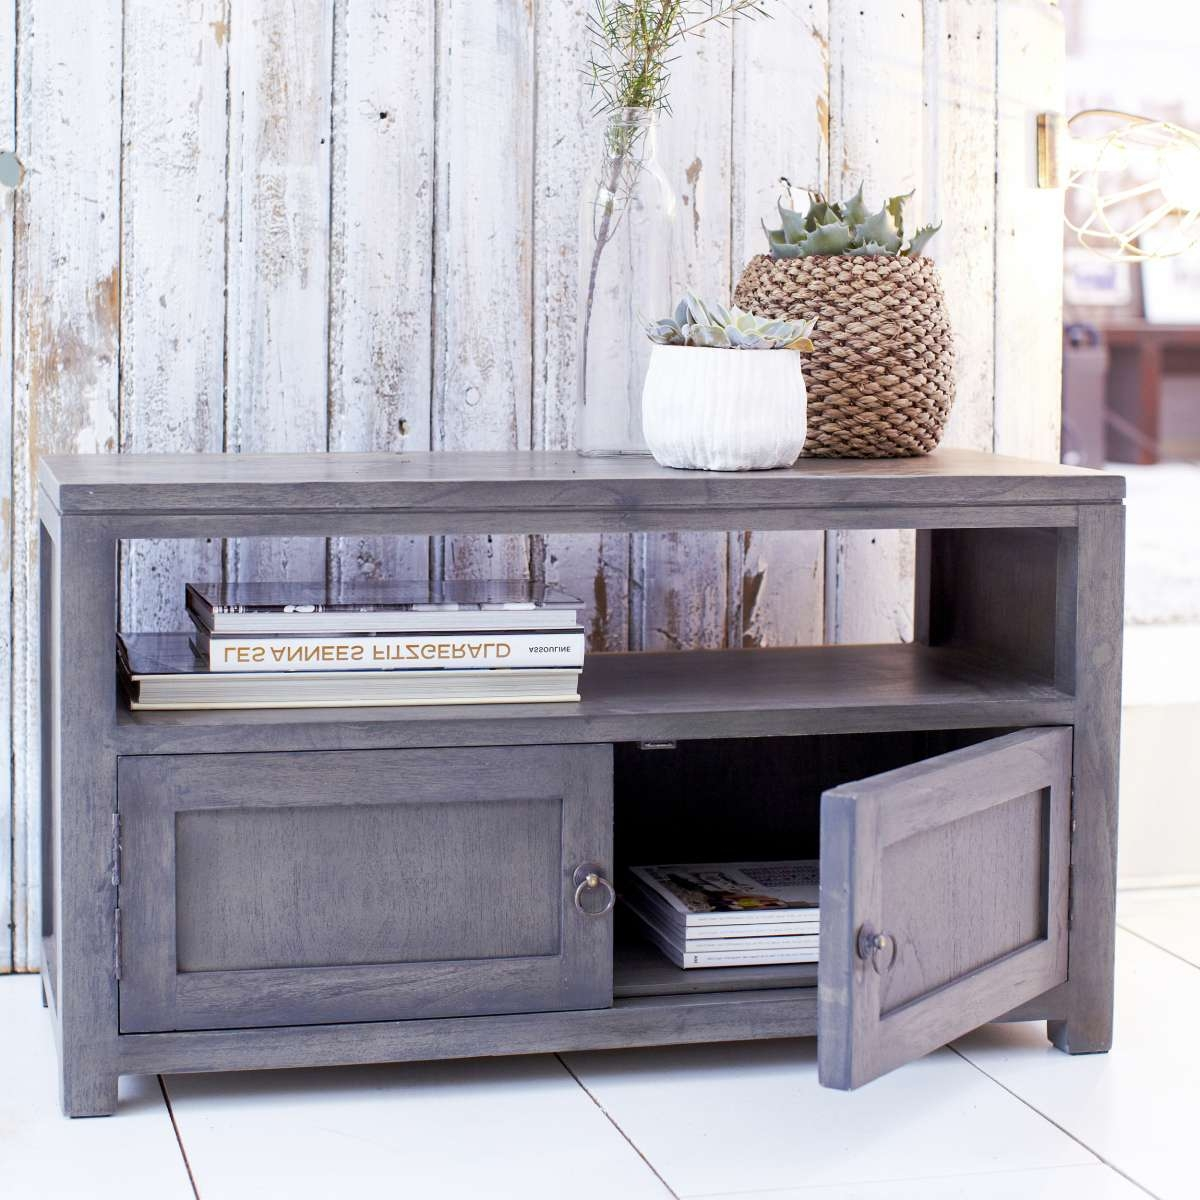 Best Grey Tv Stand : How To Make Grey Tv Stand – Indoor & Outdoor With Grey Tv Stands (View 2 of 15)